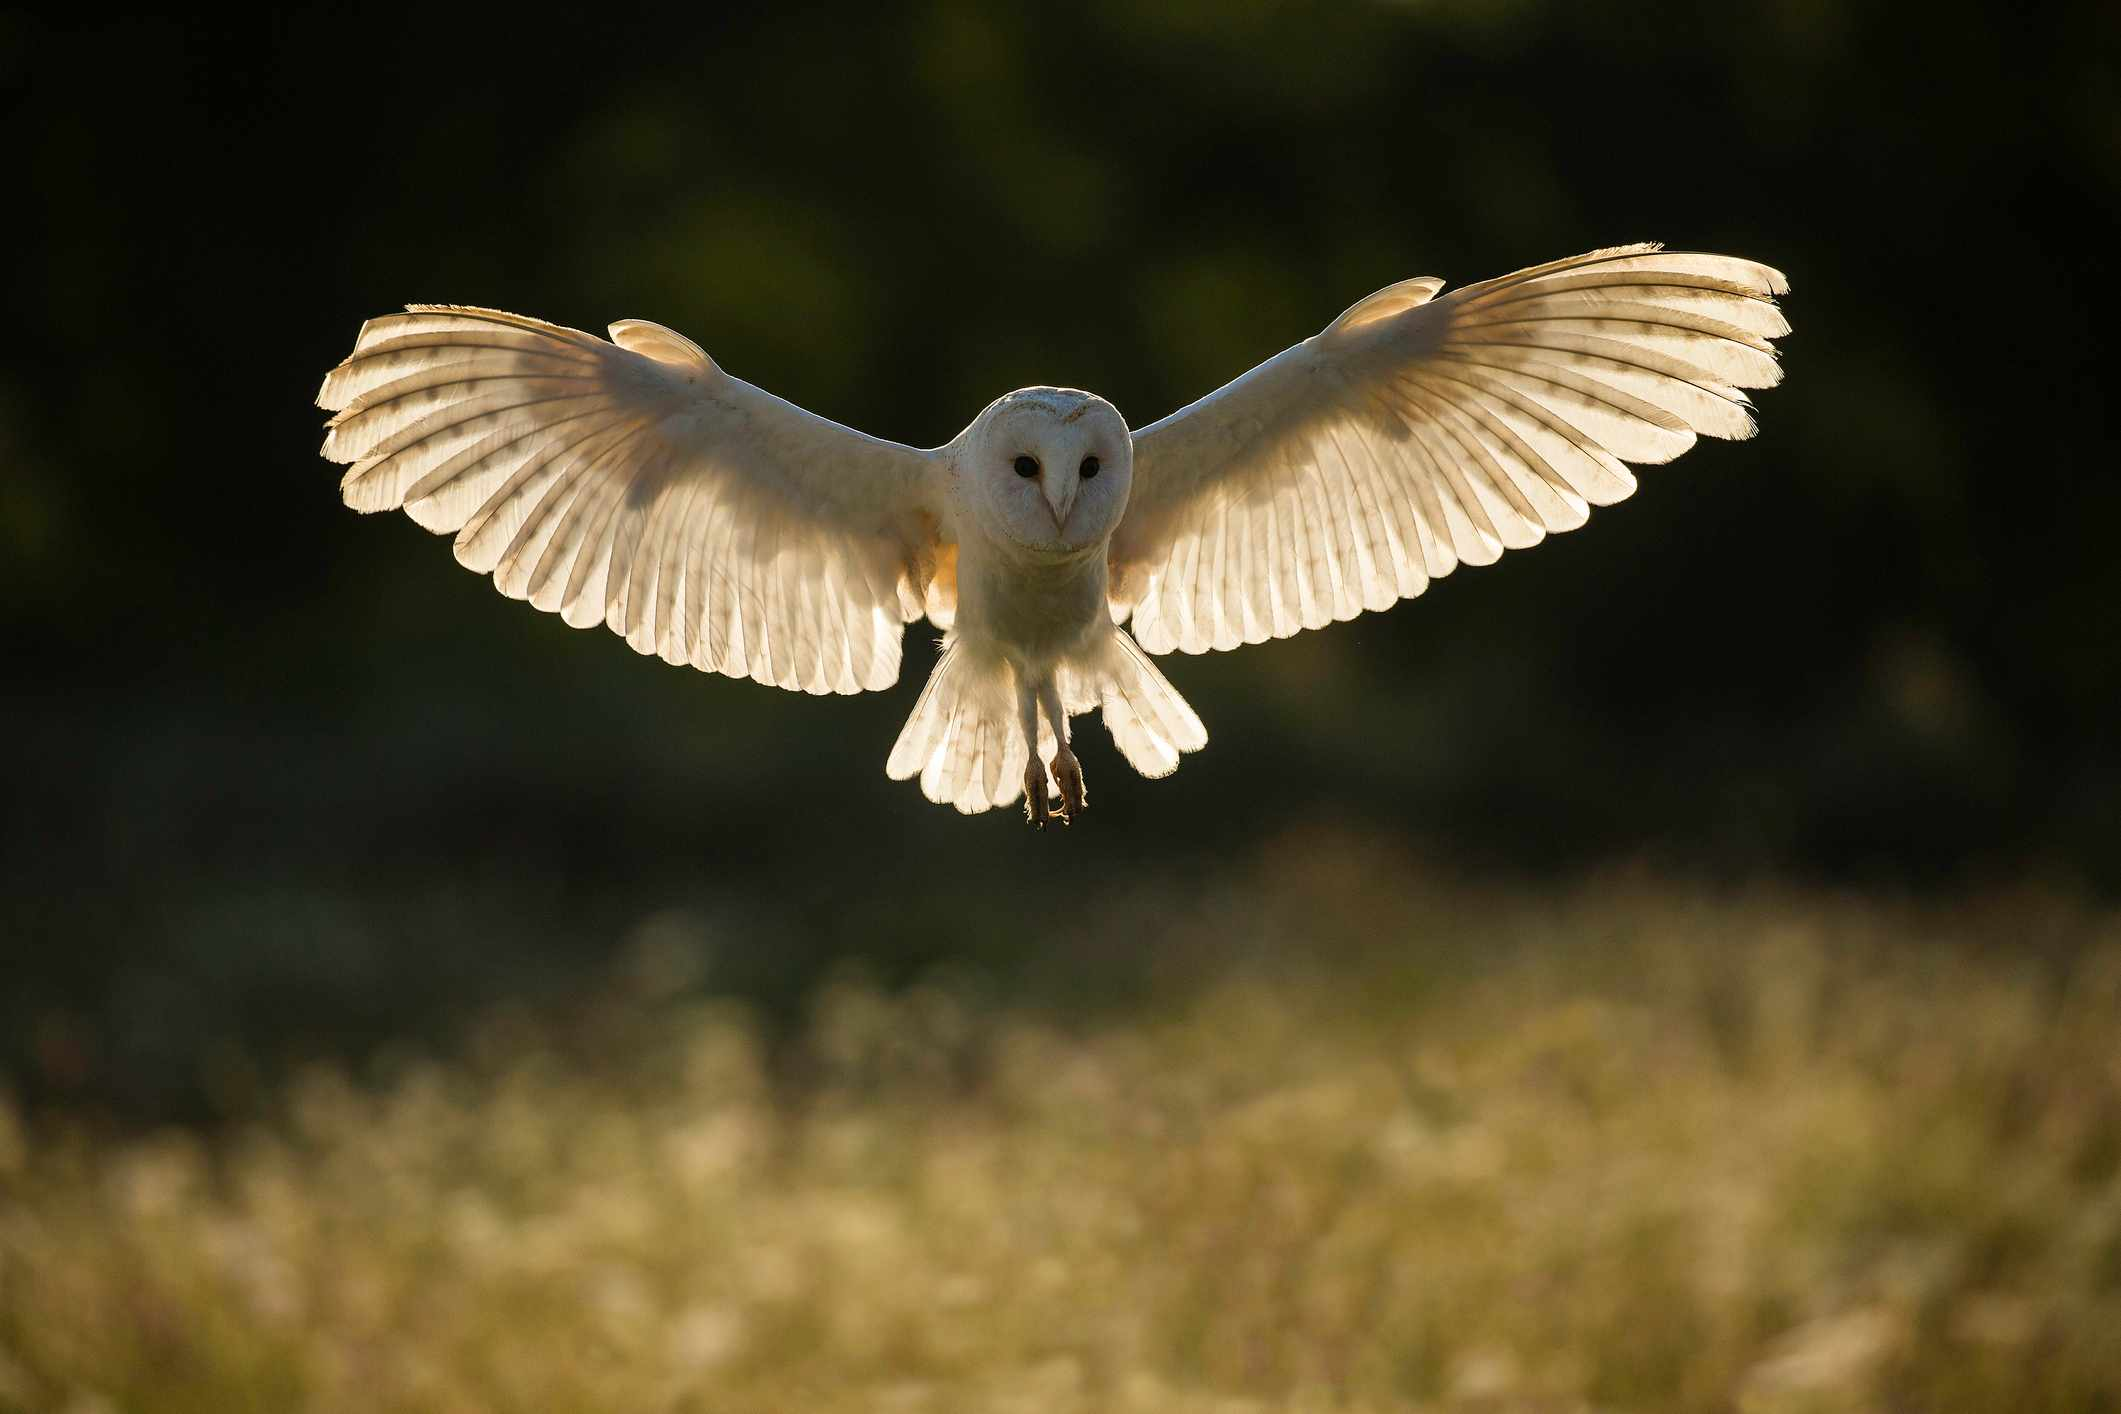 Barn owl (Tyto alba) in flight at sunset